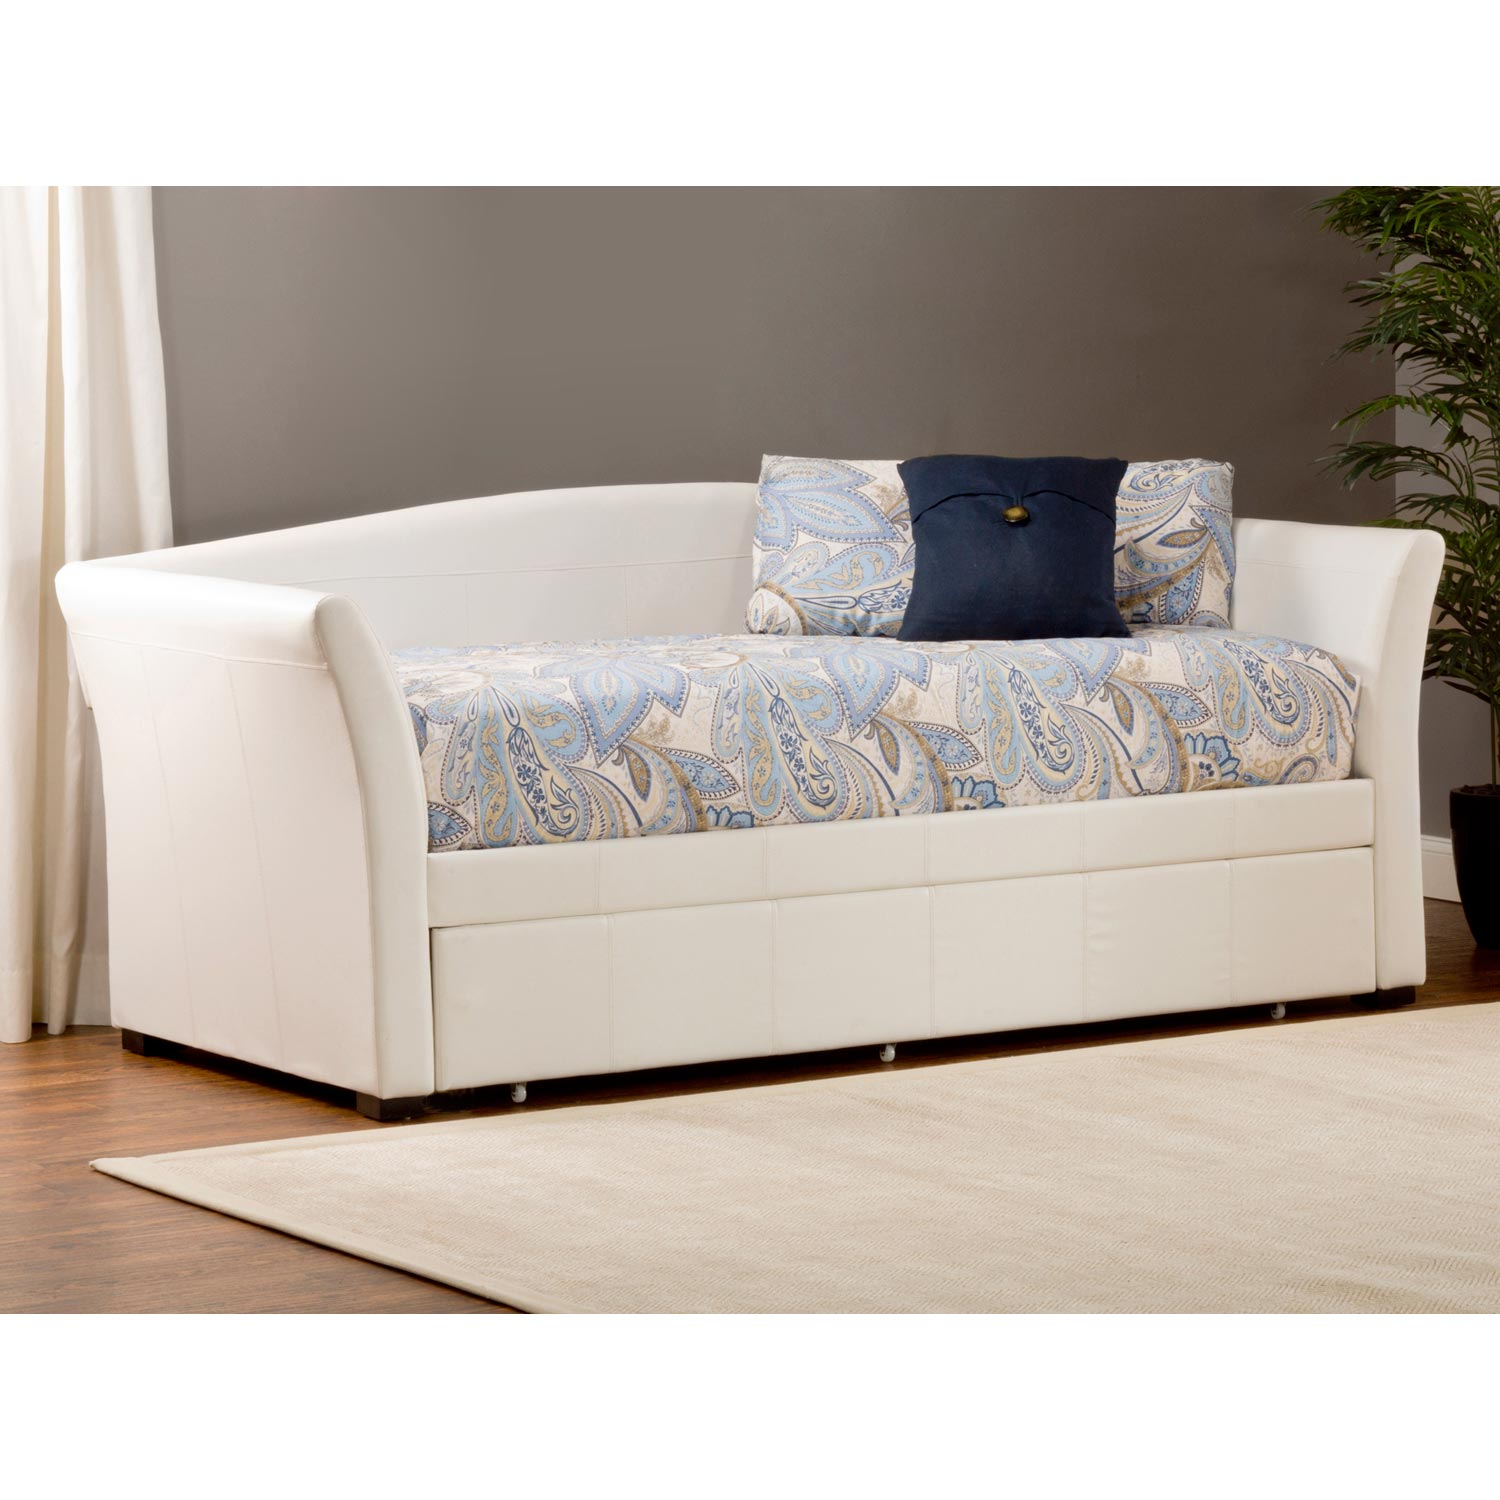 Montgomery Upholstered Daybed & Trundle - White | DCG Stores